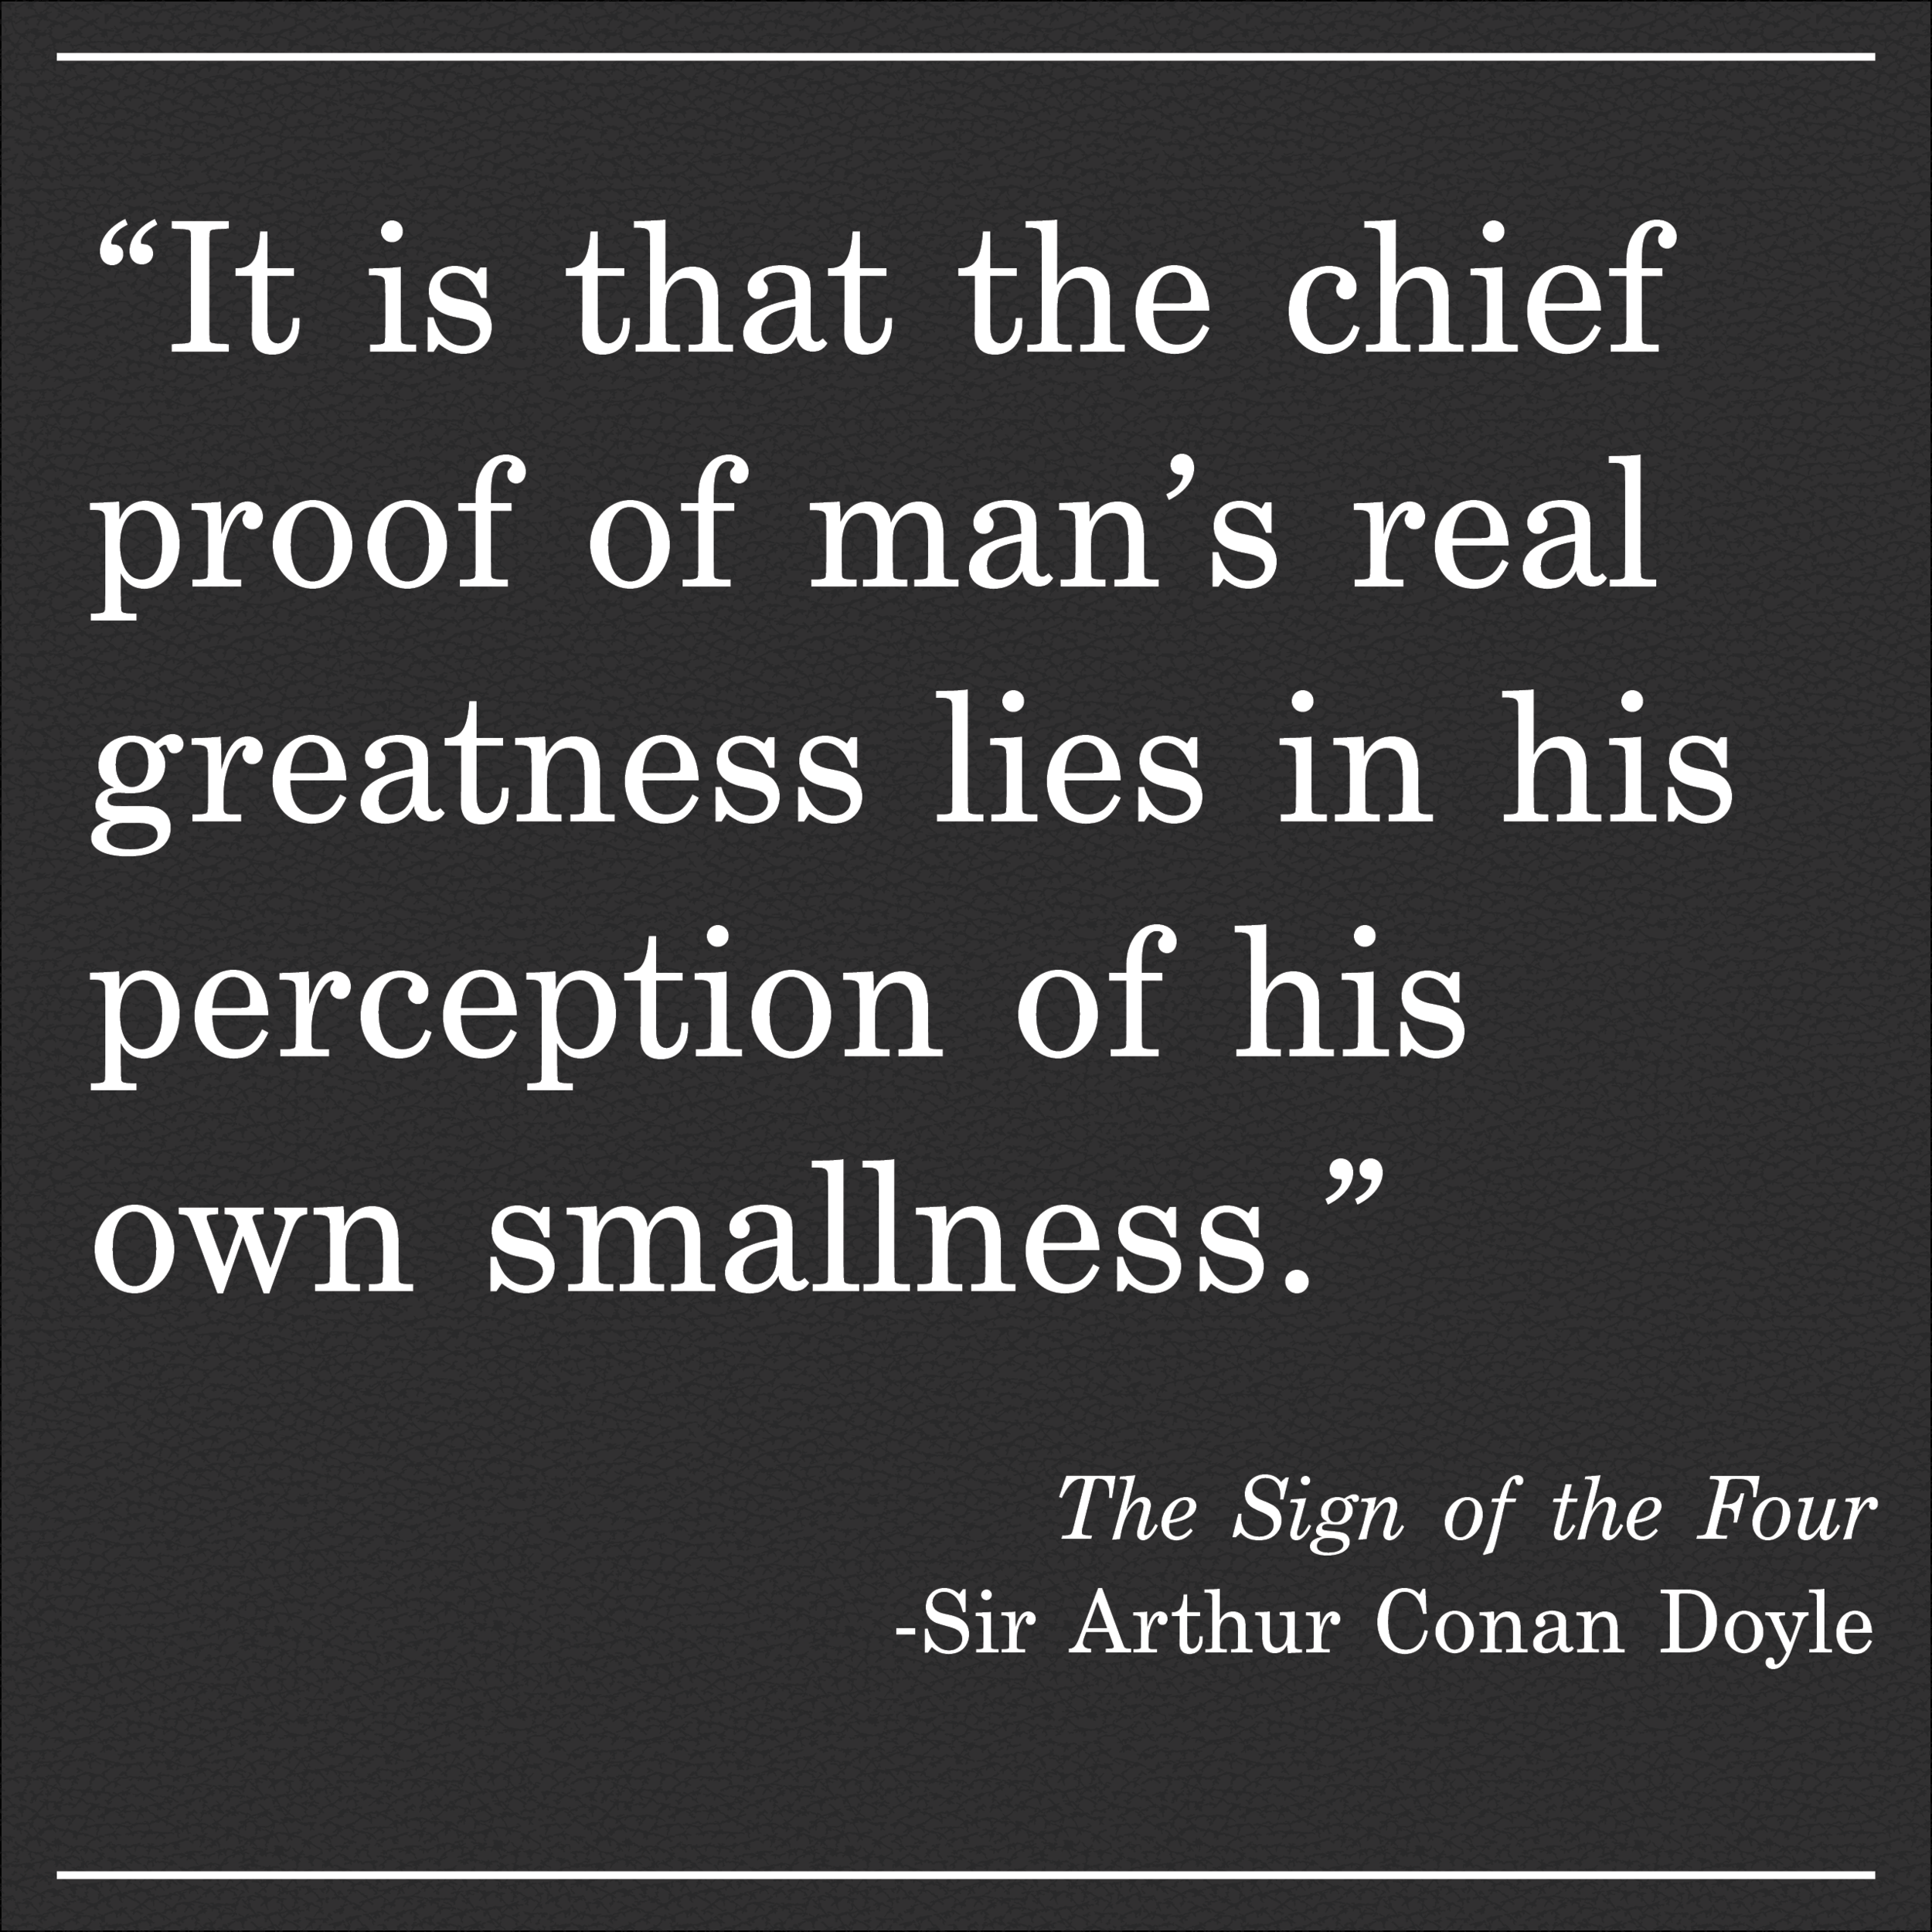 Daily Quote Sir Arthur Conan Doyle The Sign of the Four